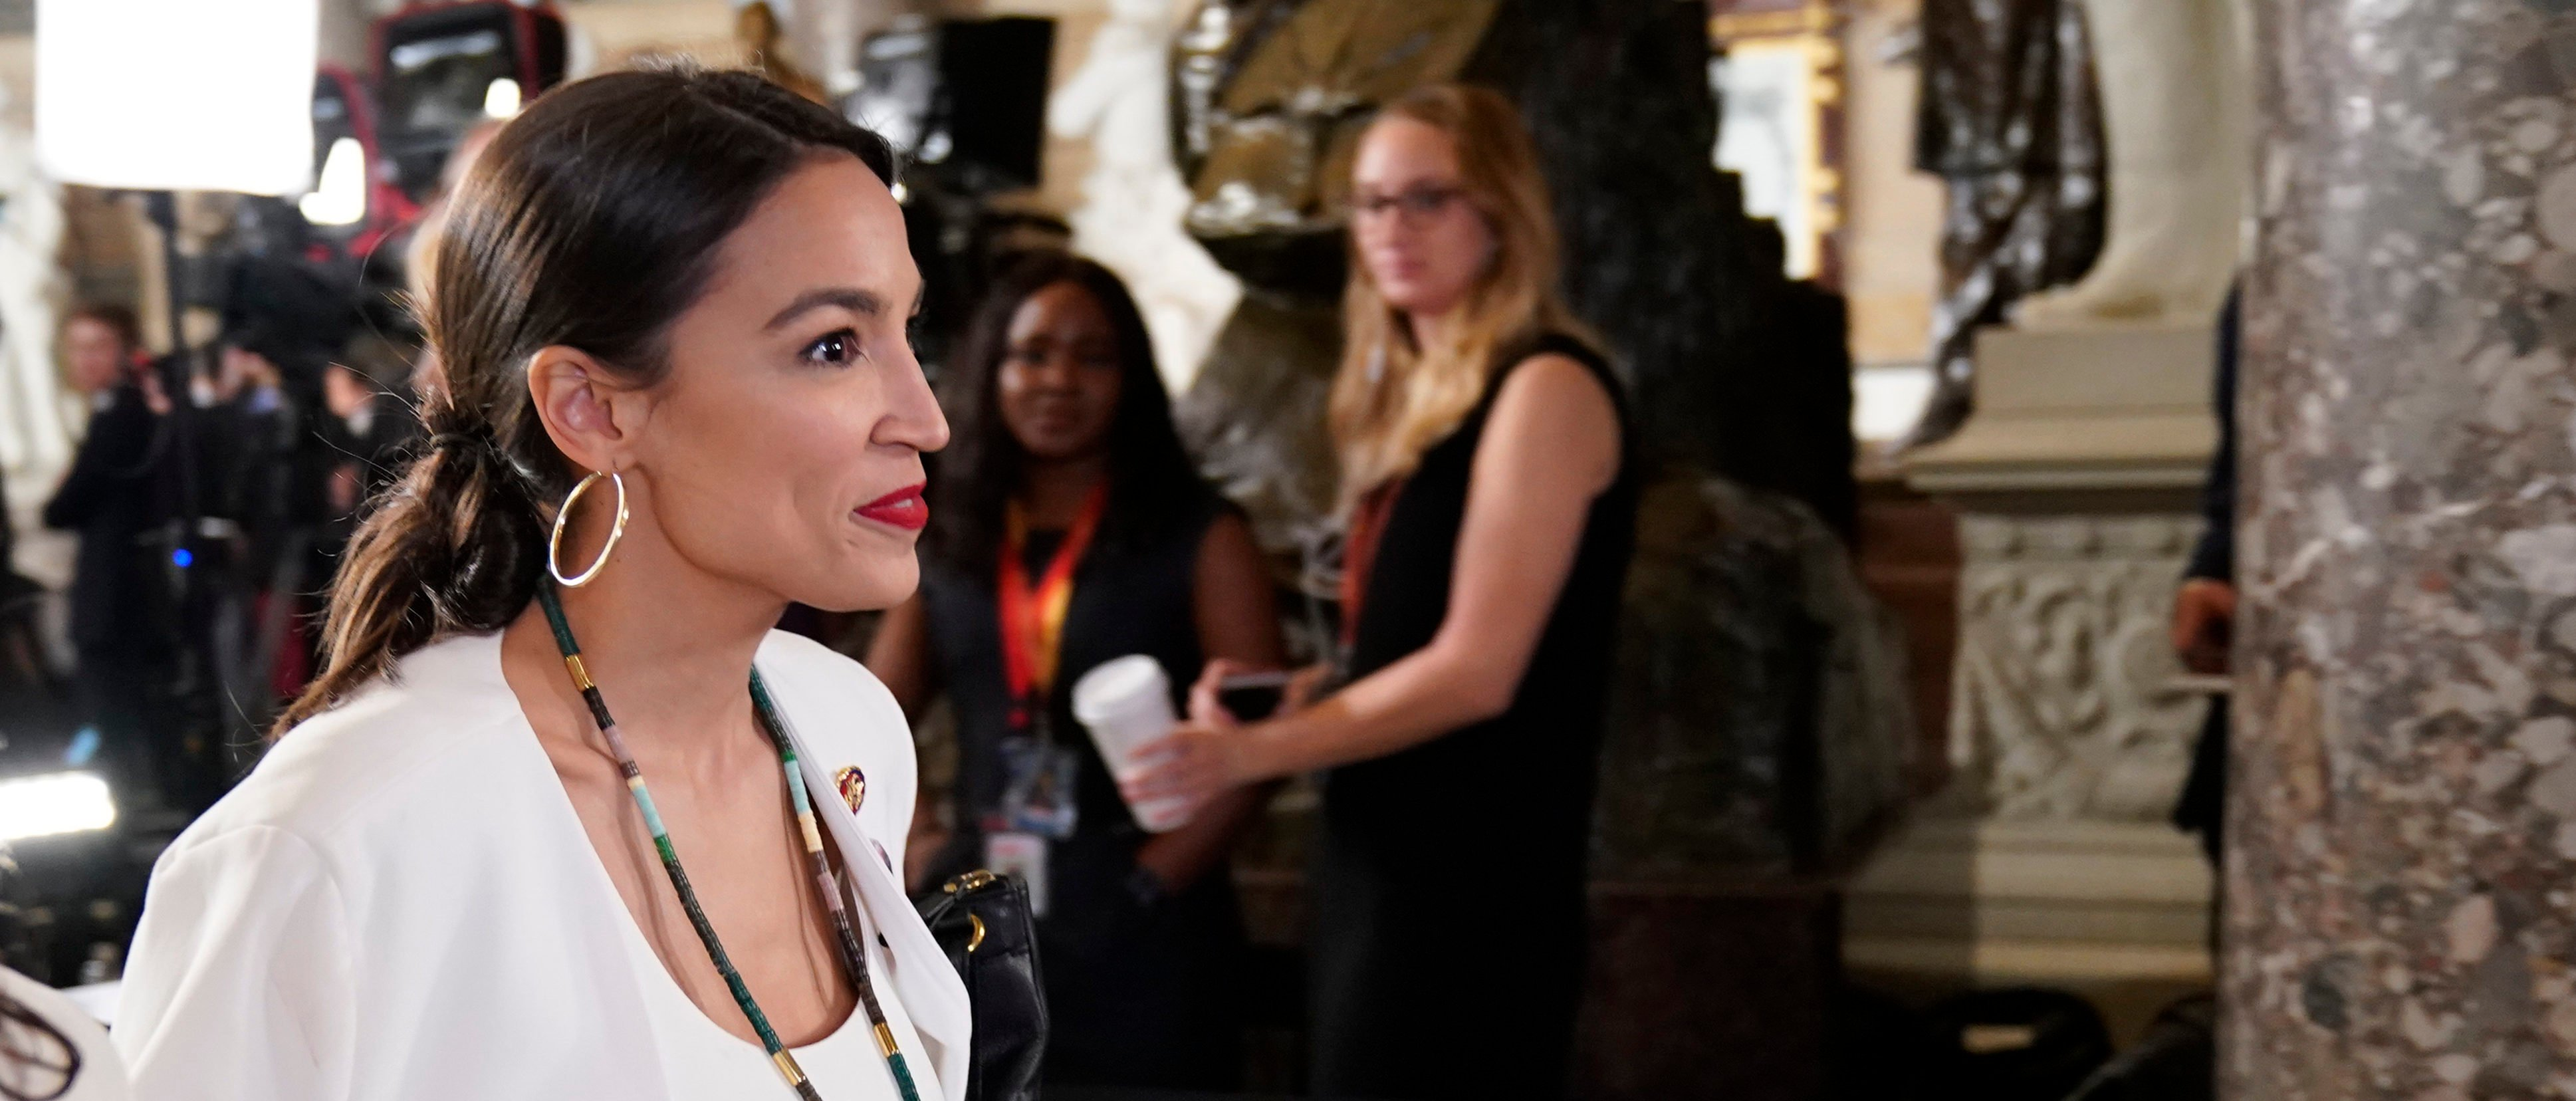 AOC Says She Won't Be Using Facebook Anymore REUTERS/Joshua Roberts